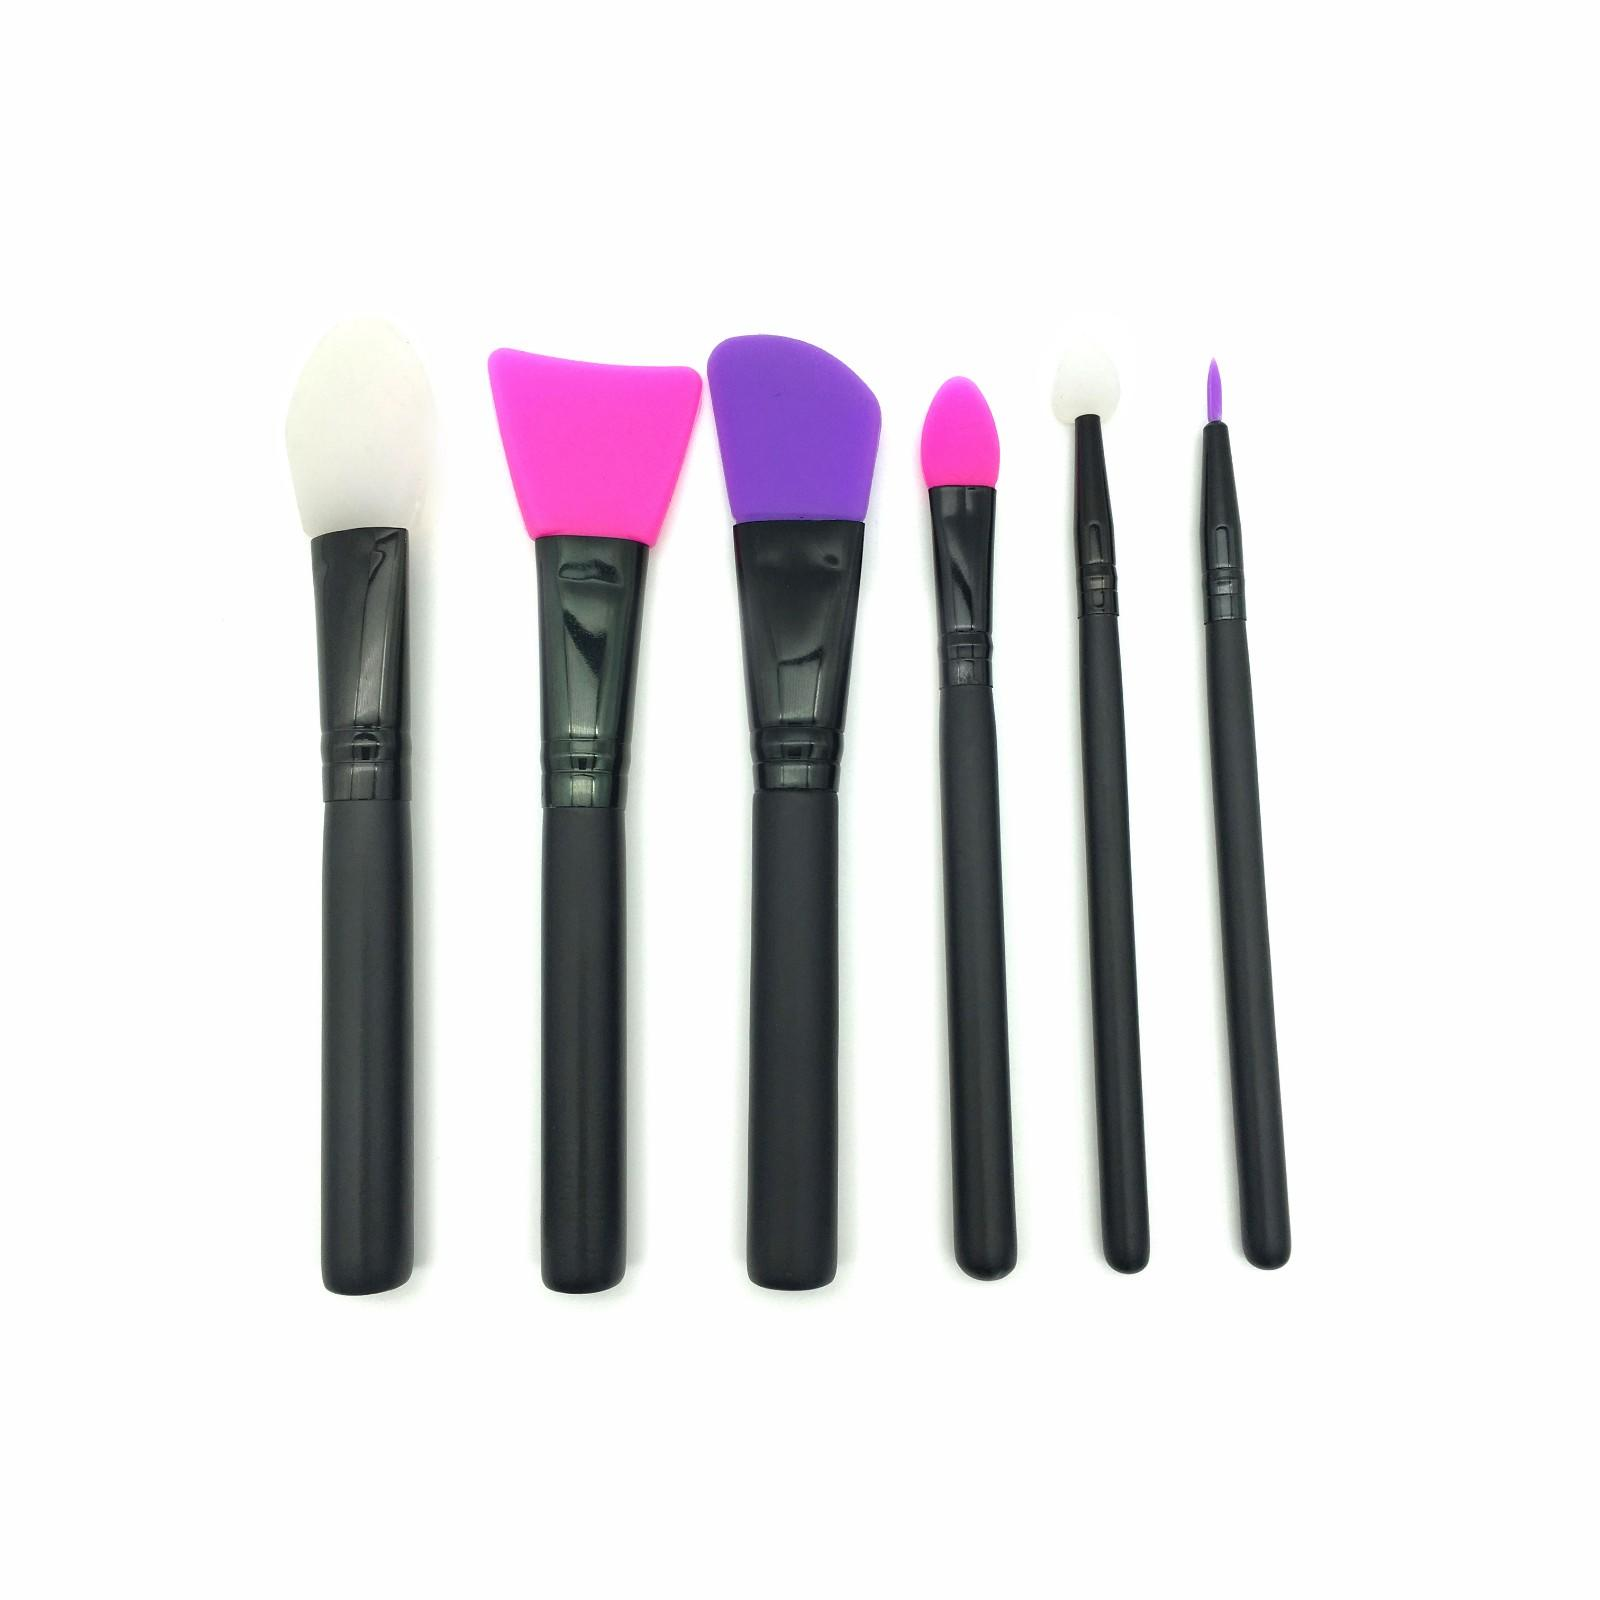 Suprabeauty retractable high quality makeup brushes wsb for eyeshadow